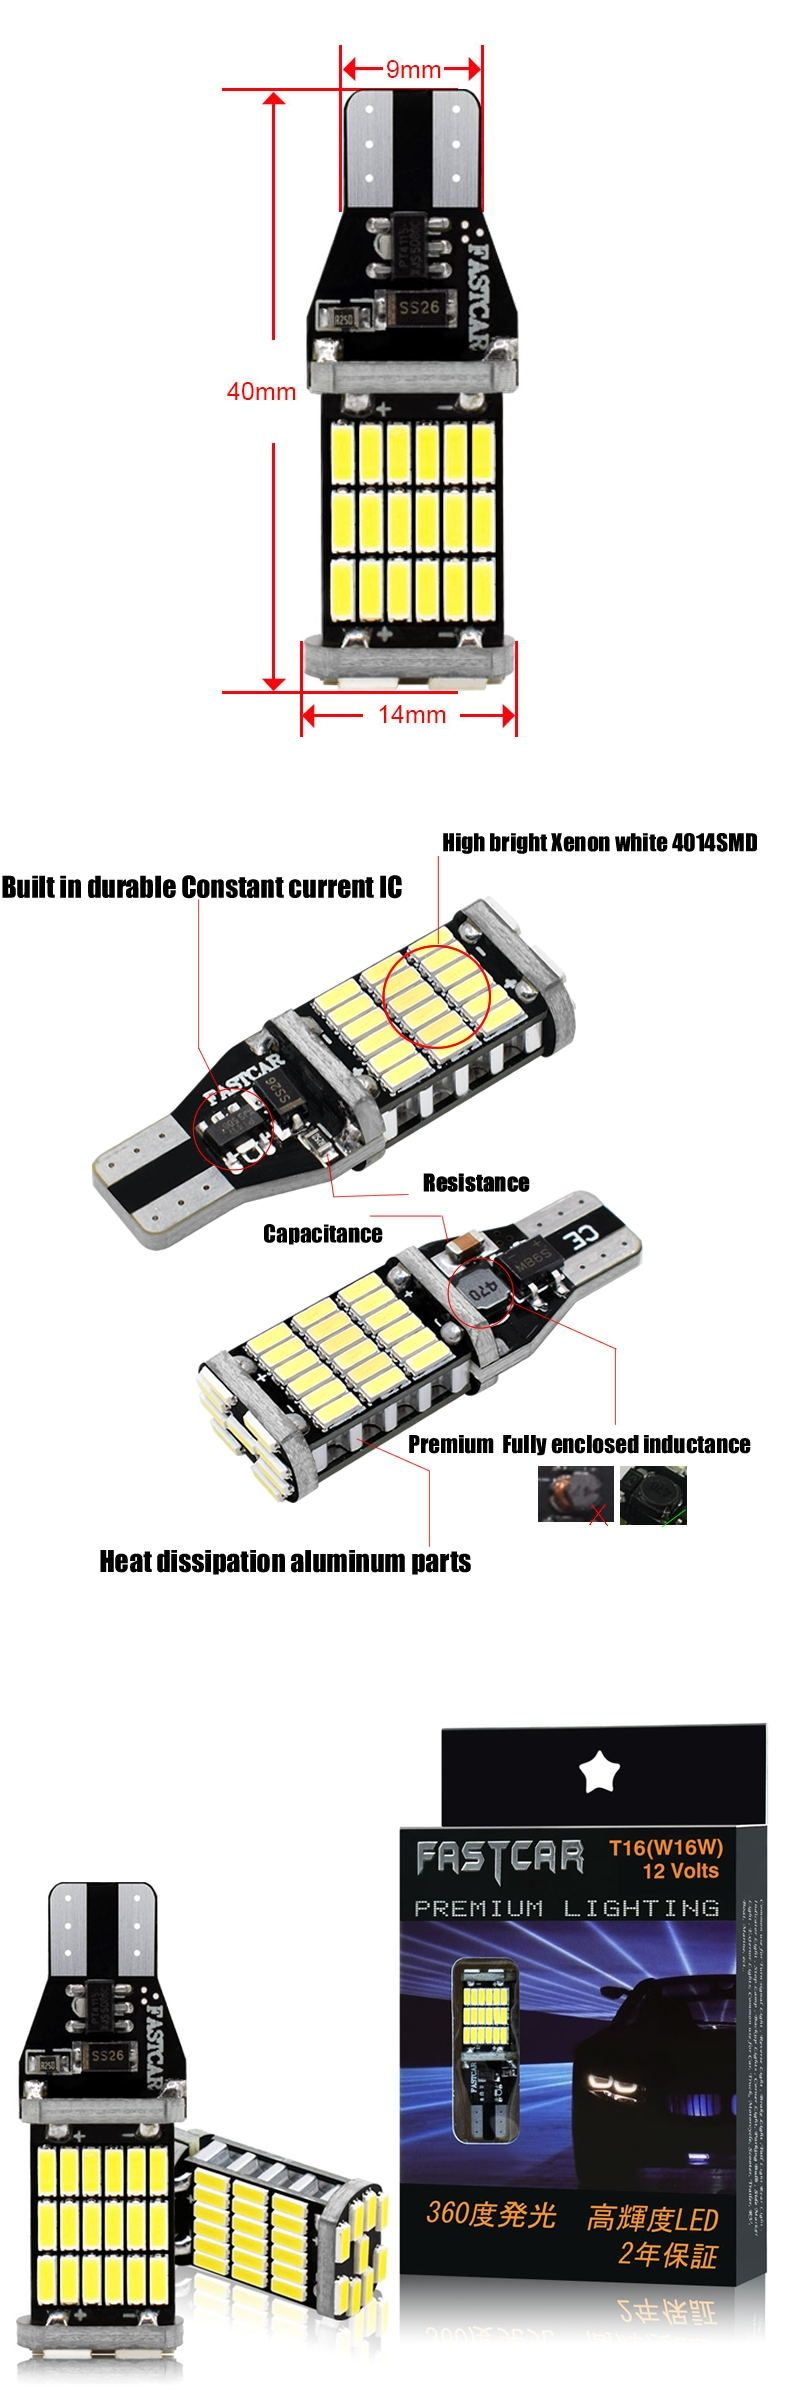 4pcs Canbus 921 912 T10 T15 45 Led 4014 Smd 45smd No Polarity T16 Bulb Light Reverse Backup Lamps Auto No Error Lights 12v 24v Bulb Lights Light Bulb